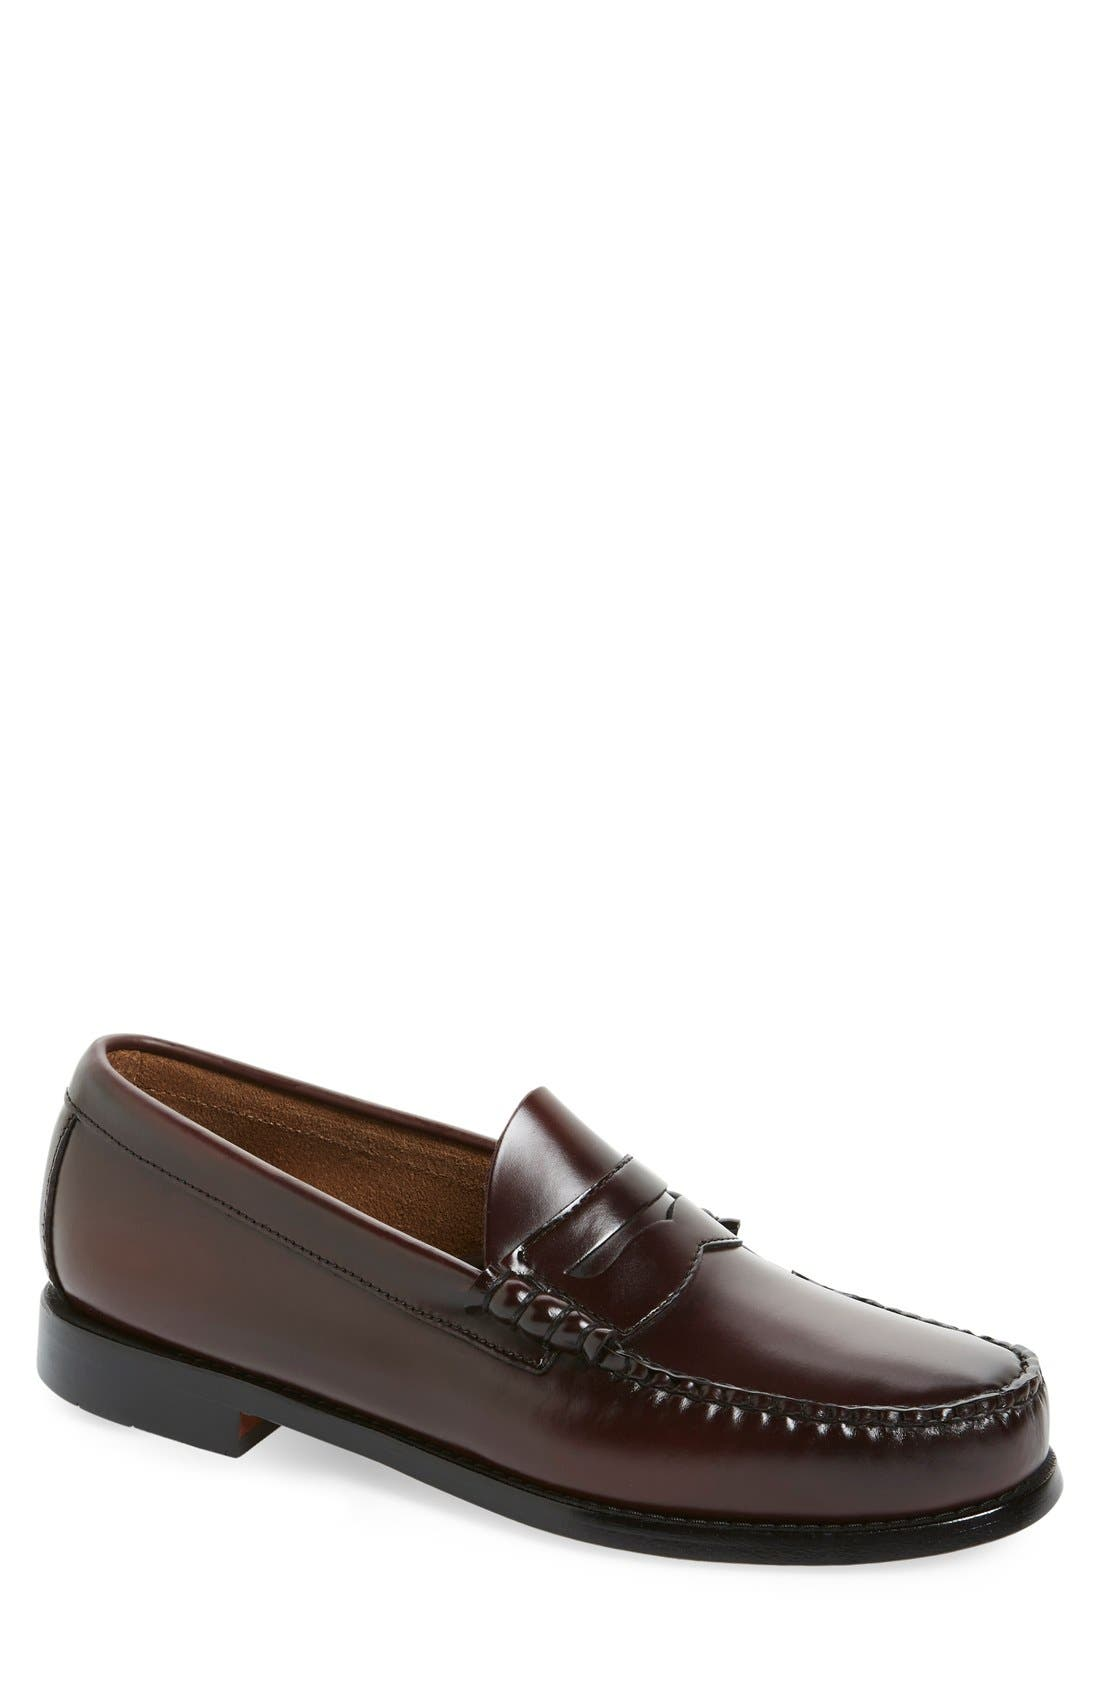 'Larson - Weejuns' Penny Loafer,                         Main,                         color, 603